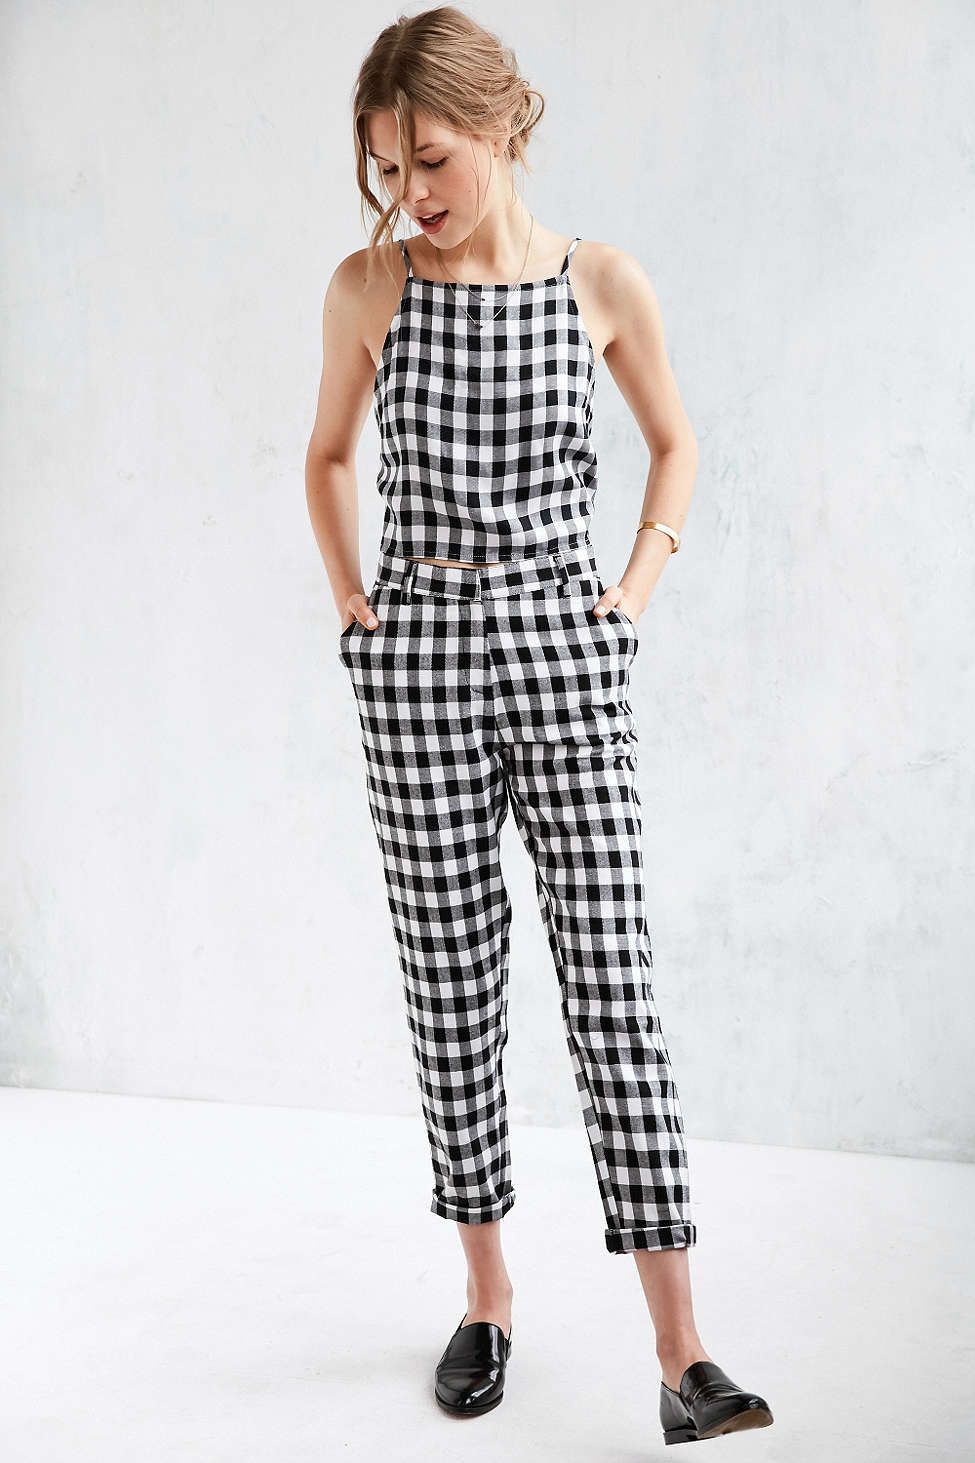 320250d1907 Native Youth Gingham Trouser  style  streetstyle  rad  fashion  outfit  chic   wideleg  summerstyle  twopiece